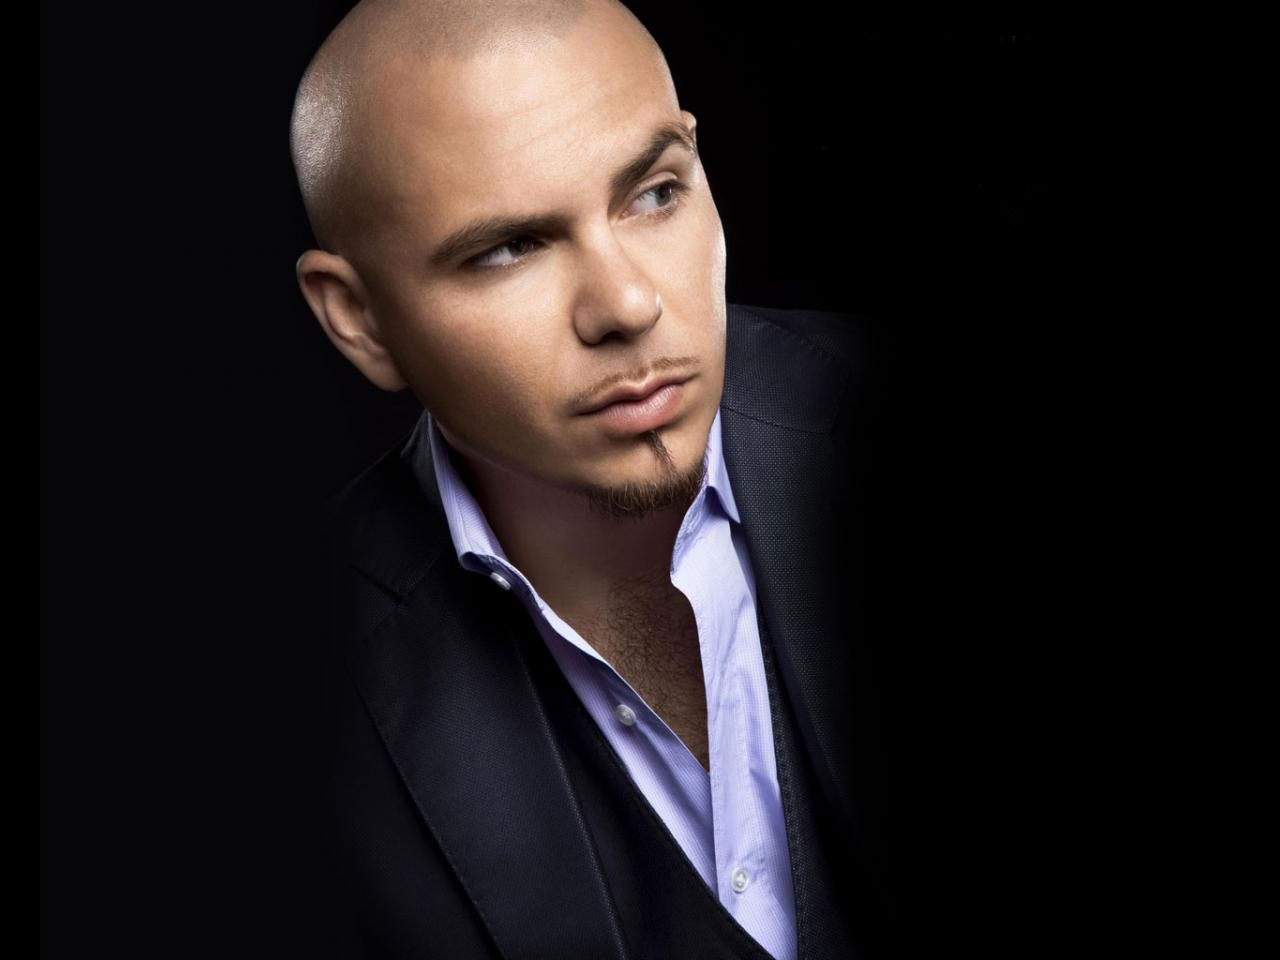 Sorry Chris.  If Pitbull knocks on my door, I am NOT turning him away!